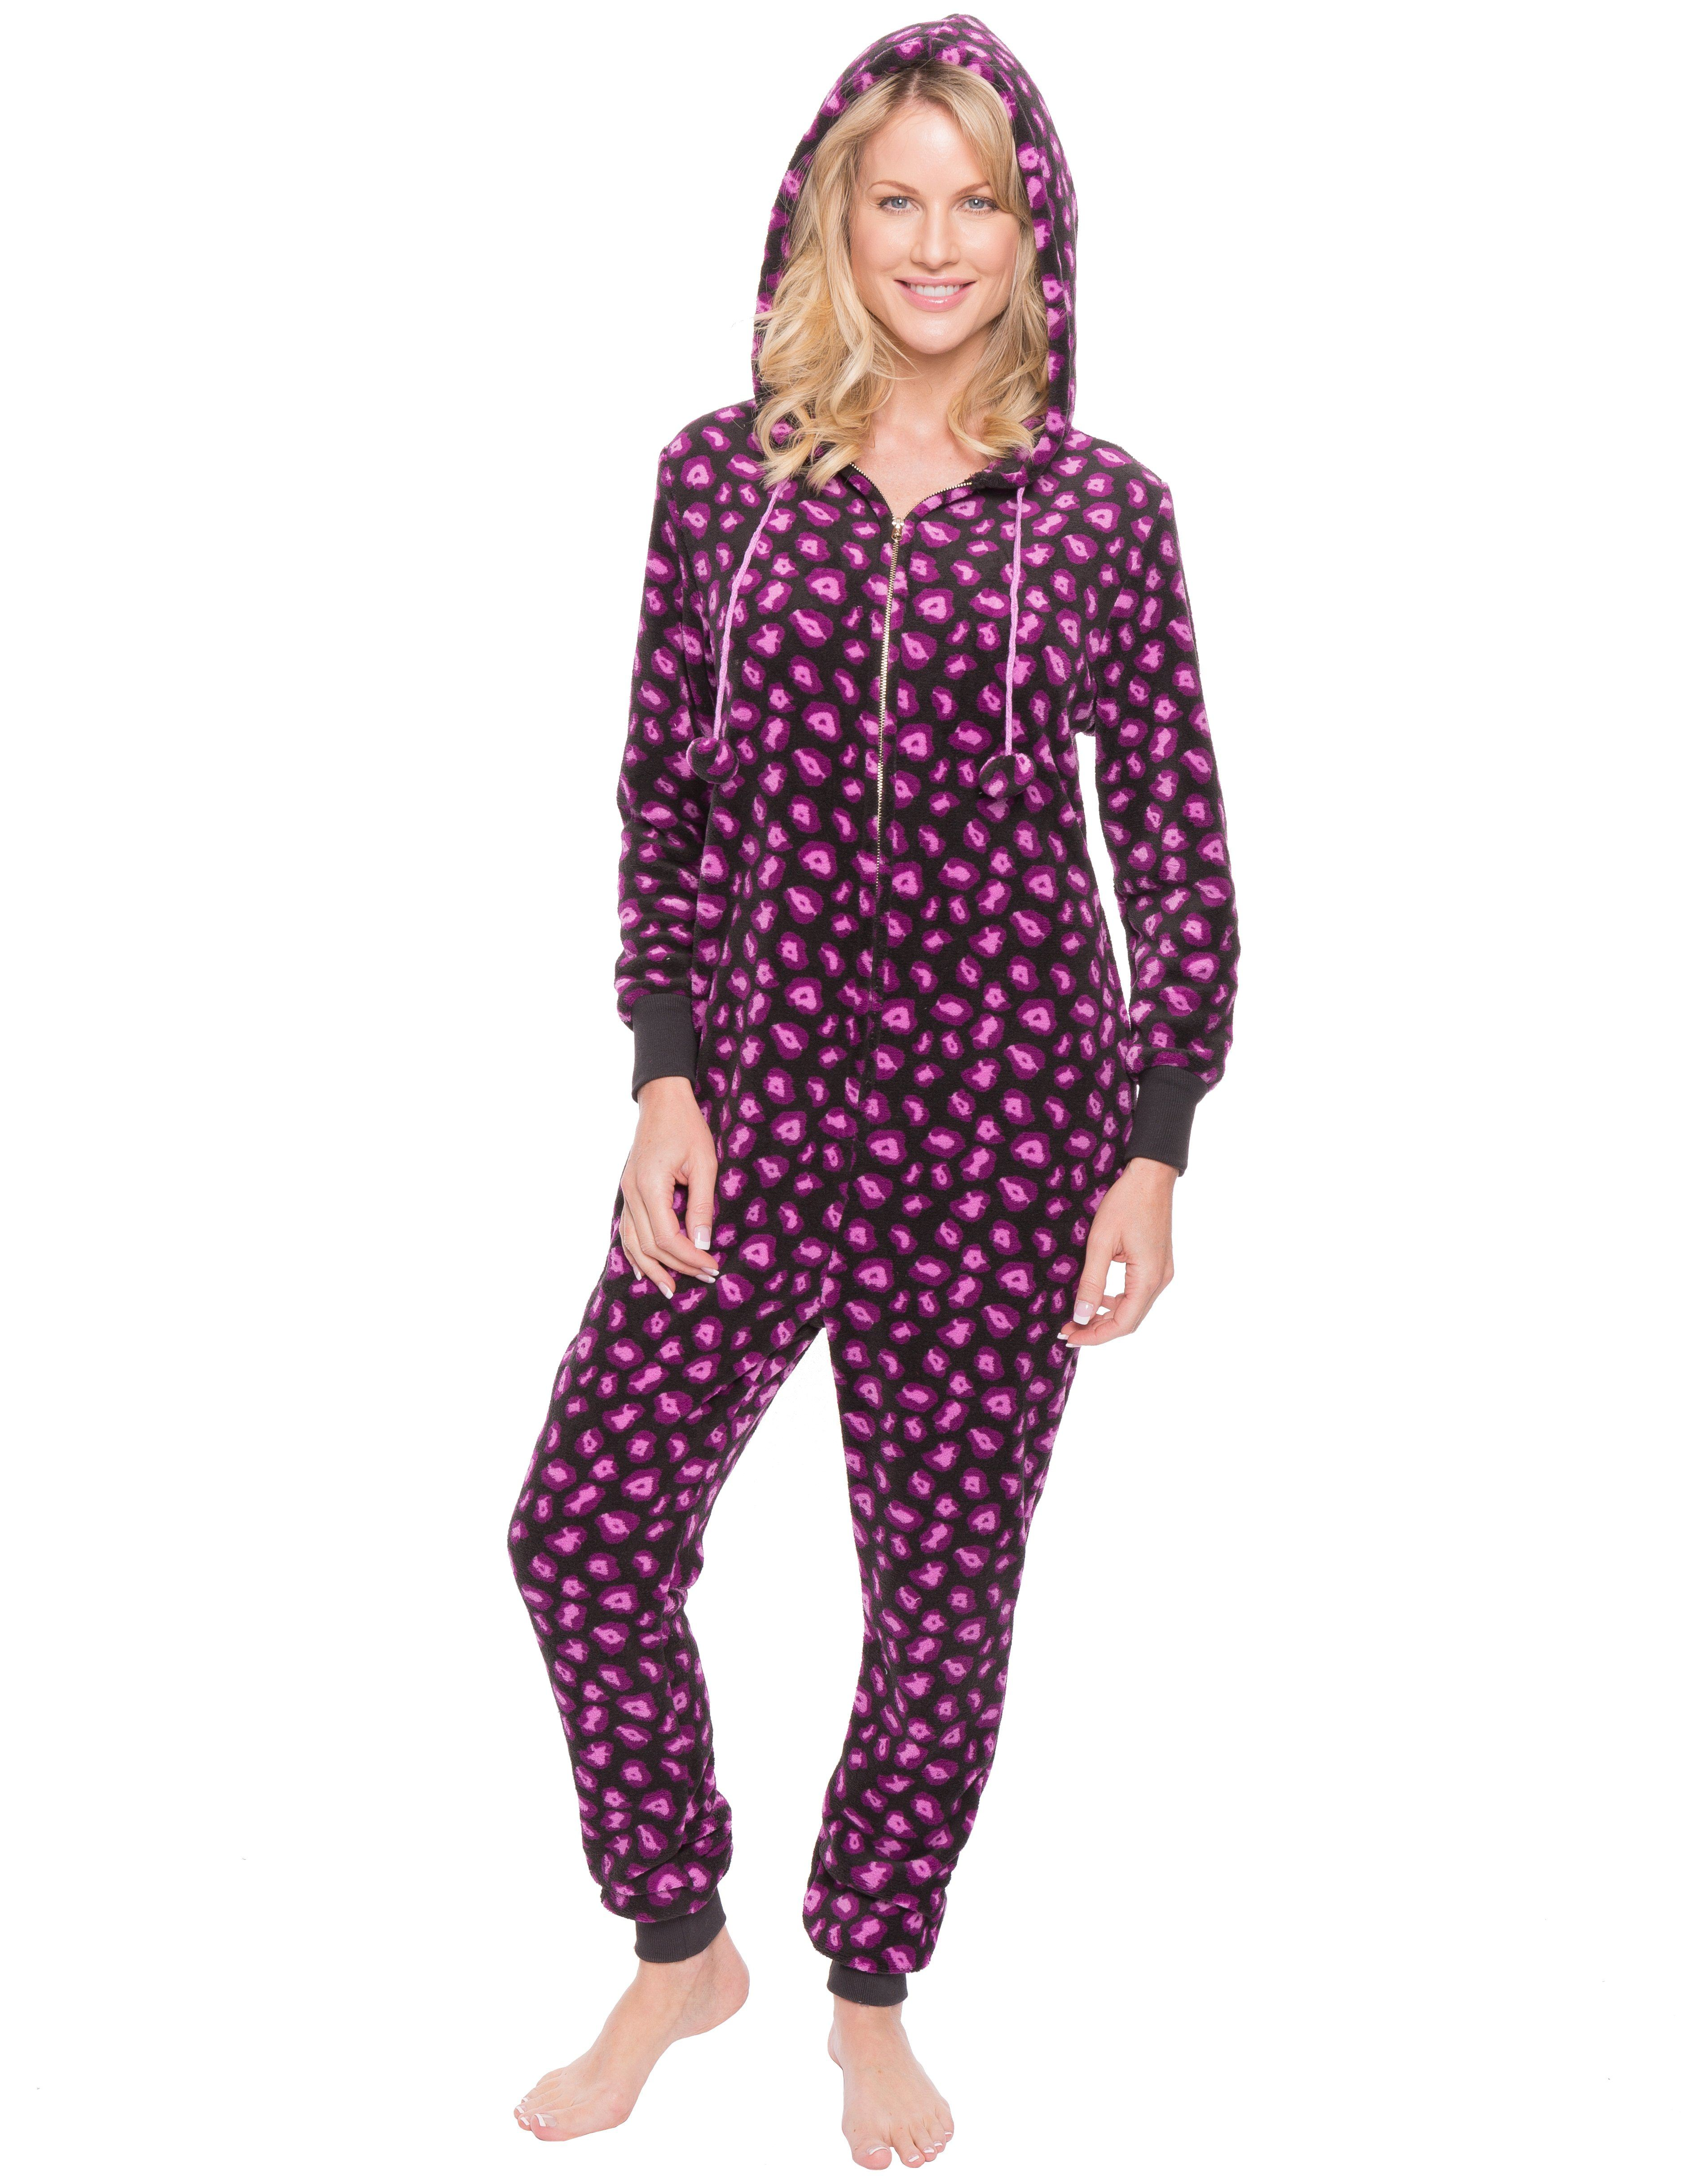 Women's Premium Coral Fleece Plush Hooded Onesie Pajama